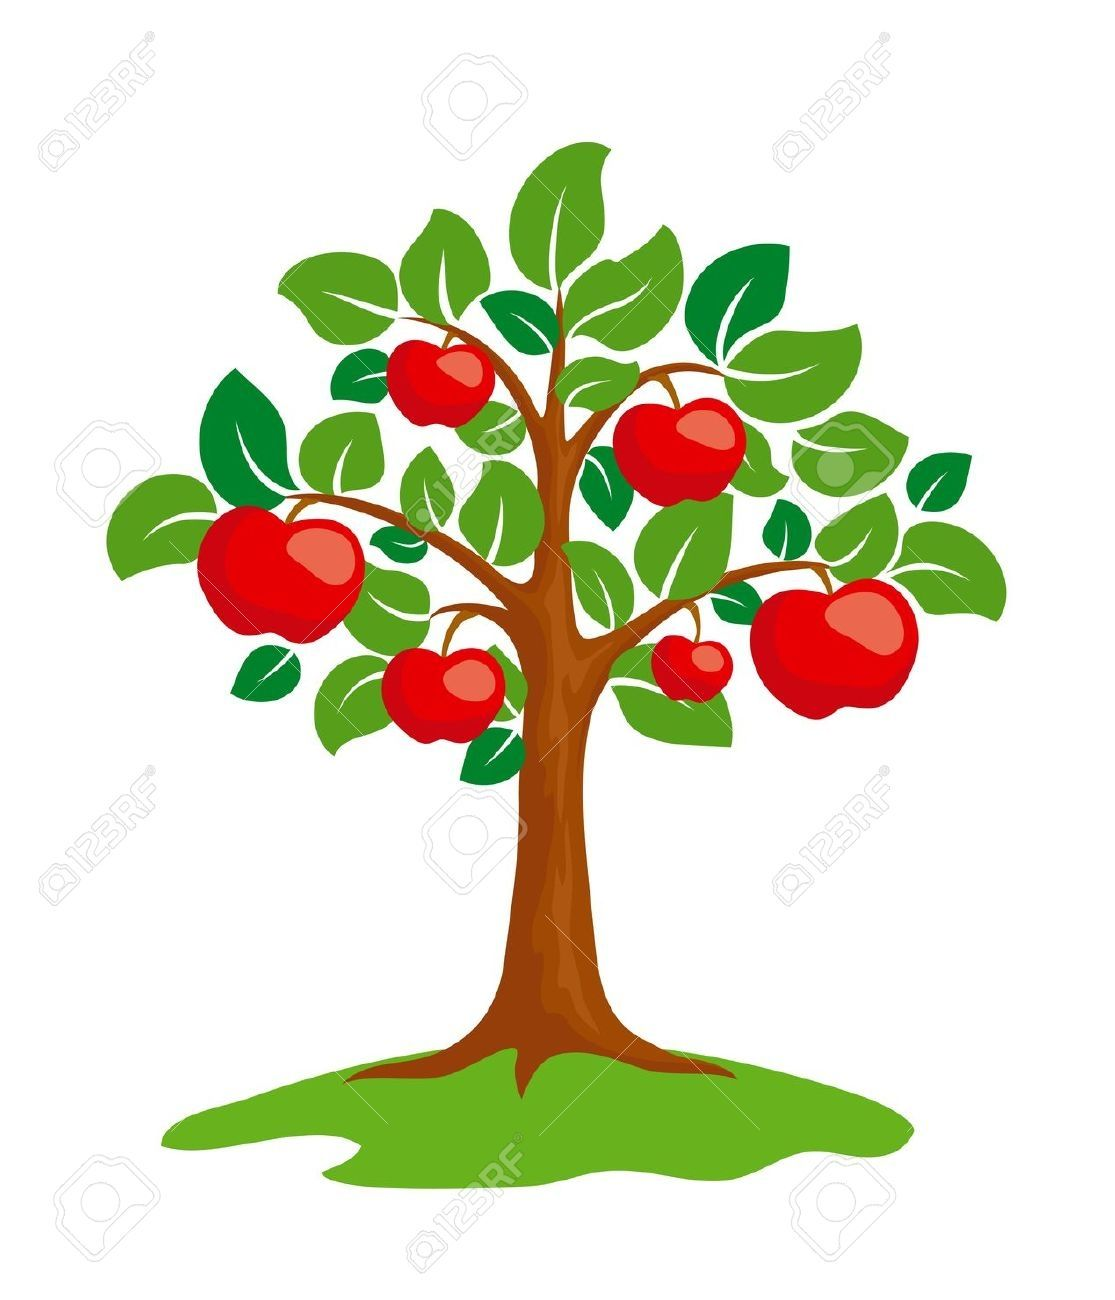 trunk clipart apple tree 17 jpg 1 115 1 300 pixels red day pinterest rh pinterest co uk clipart apple tree free clipart images of apple tree